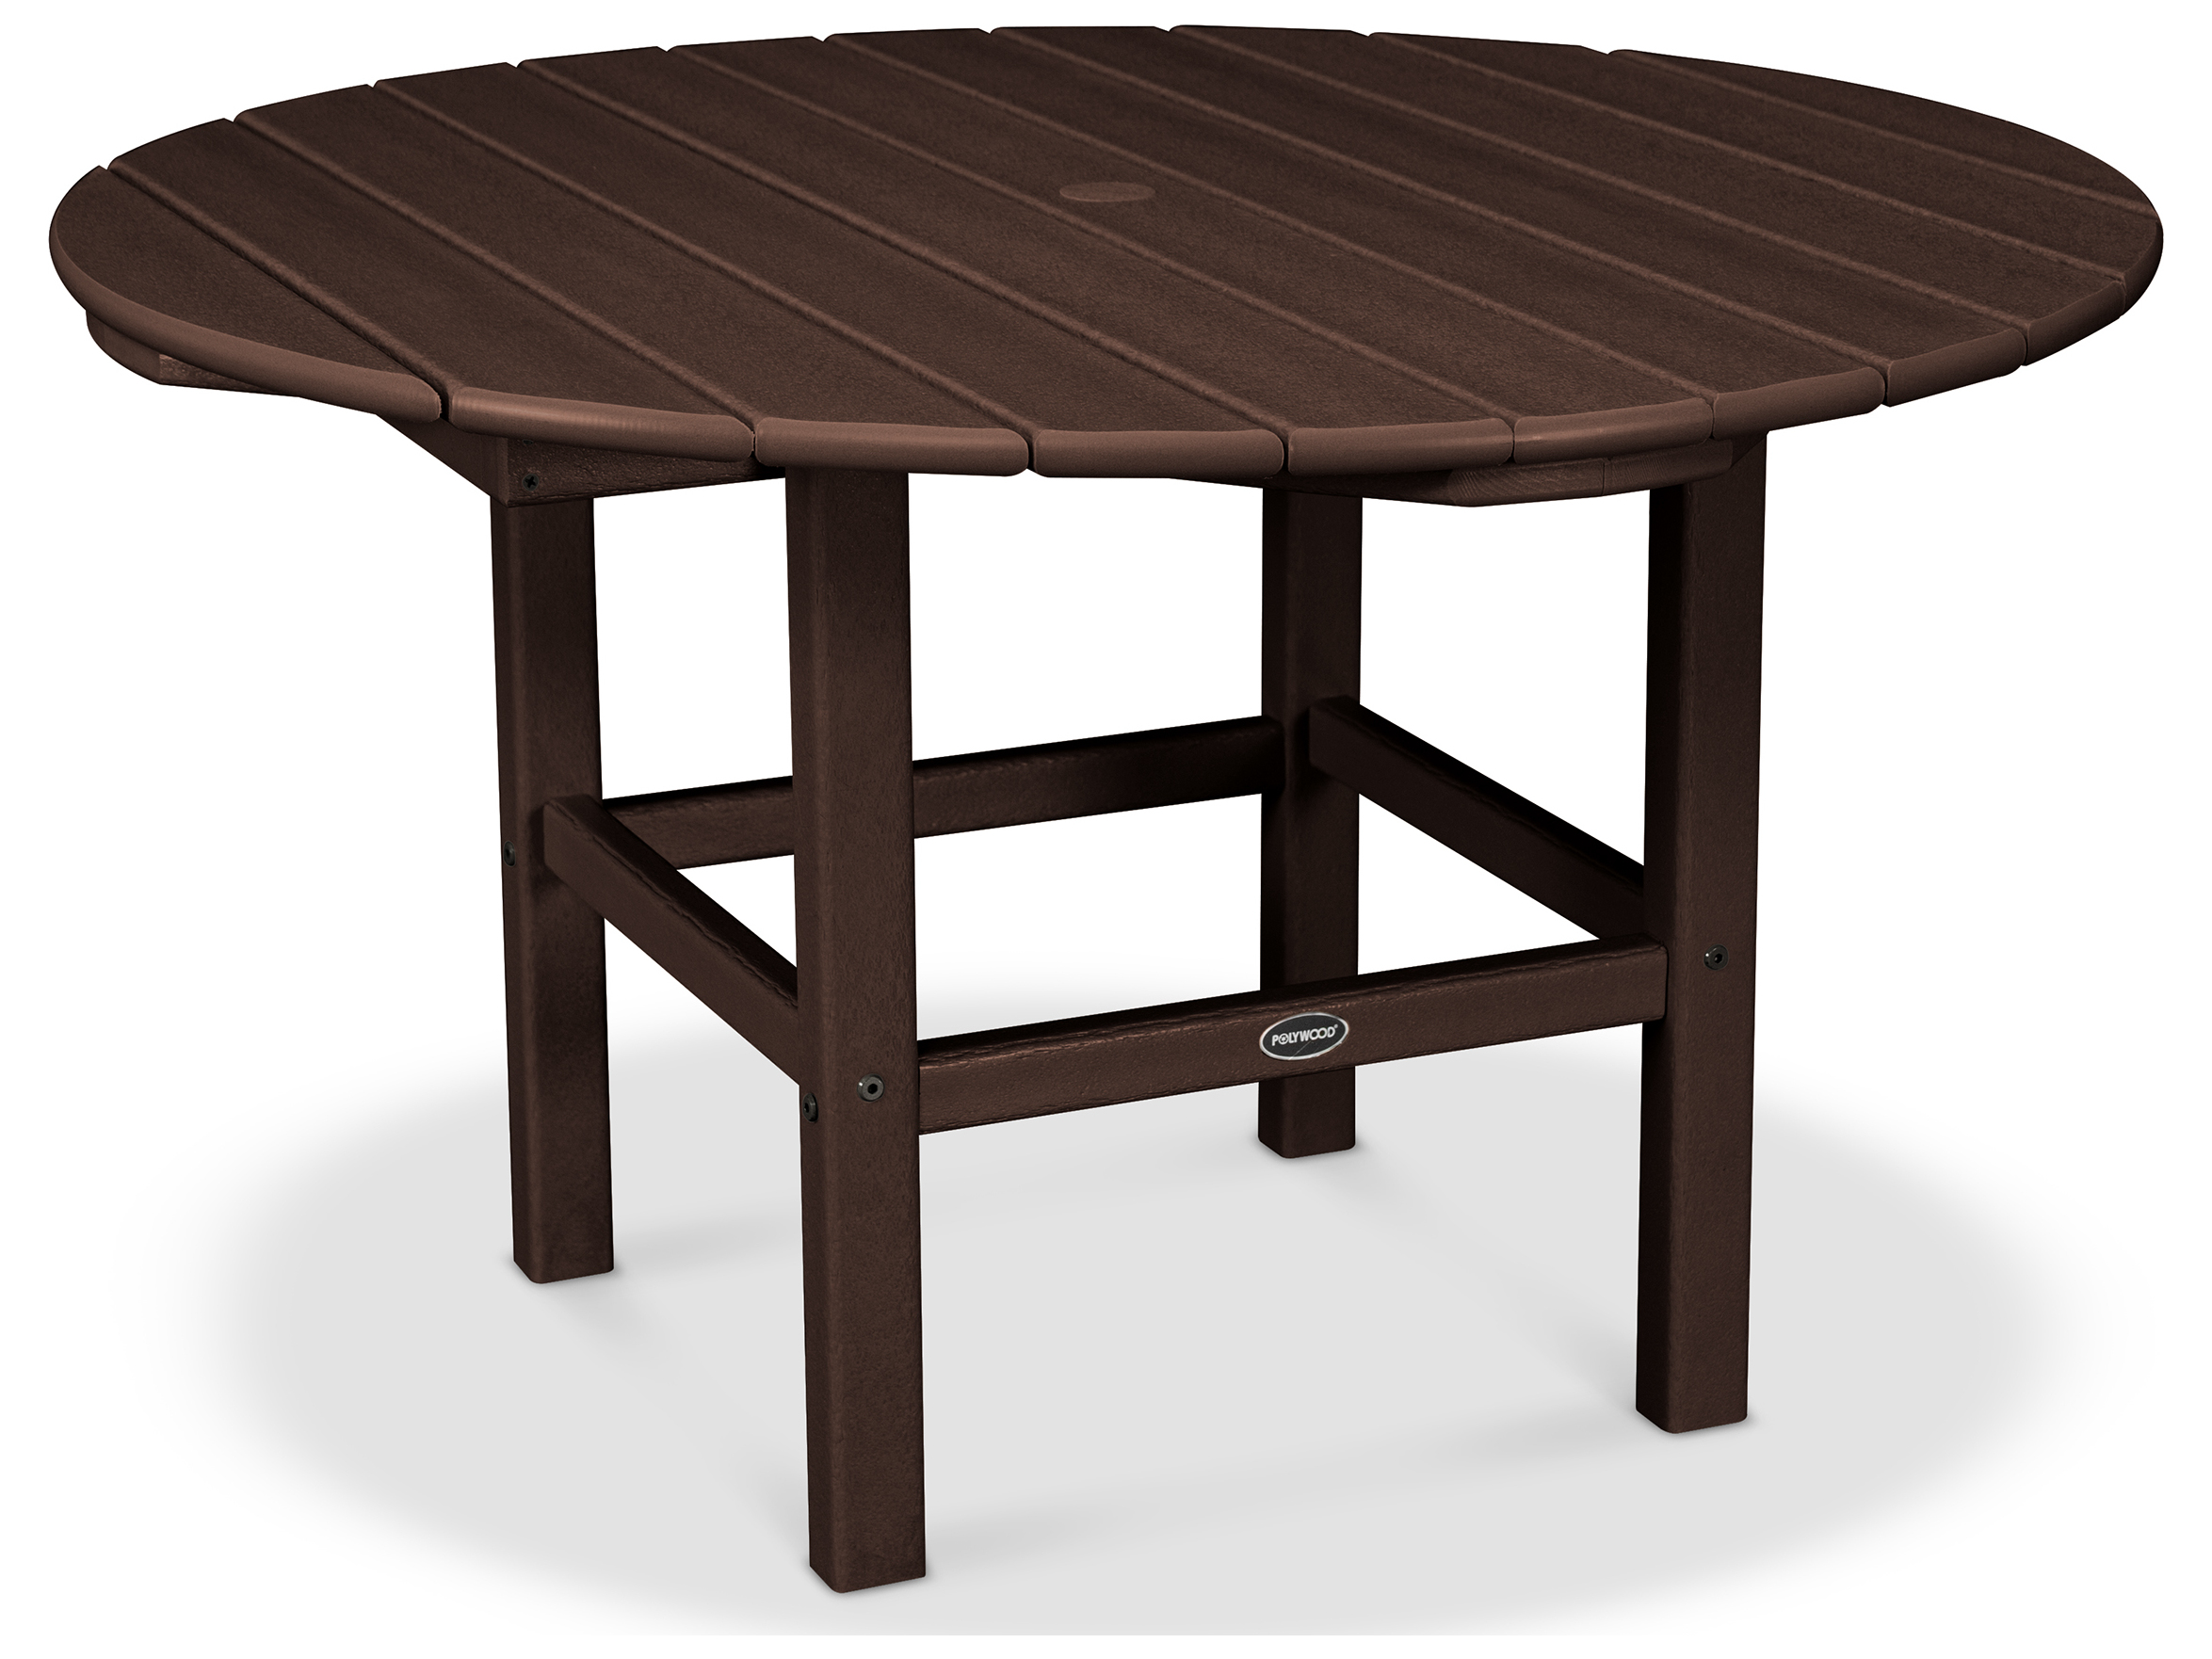 polywood kids recycled plastic 38 round dining table rkt38. Black Bedroom Furniture Sets. Home Design Ideas